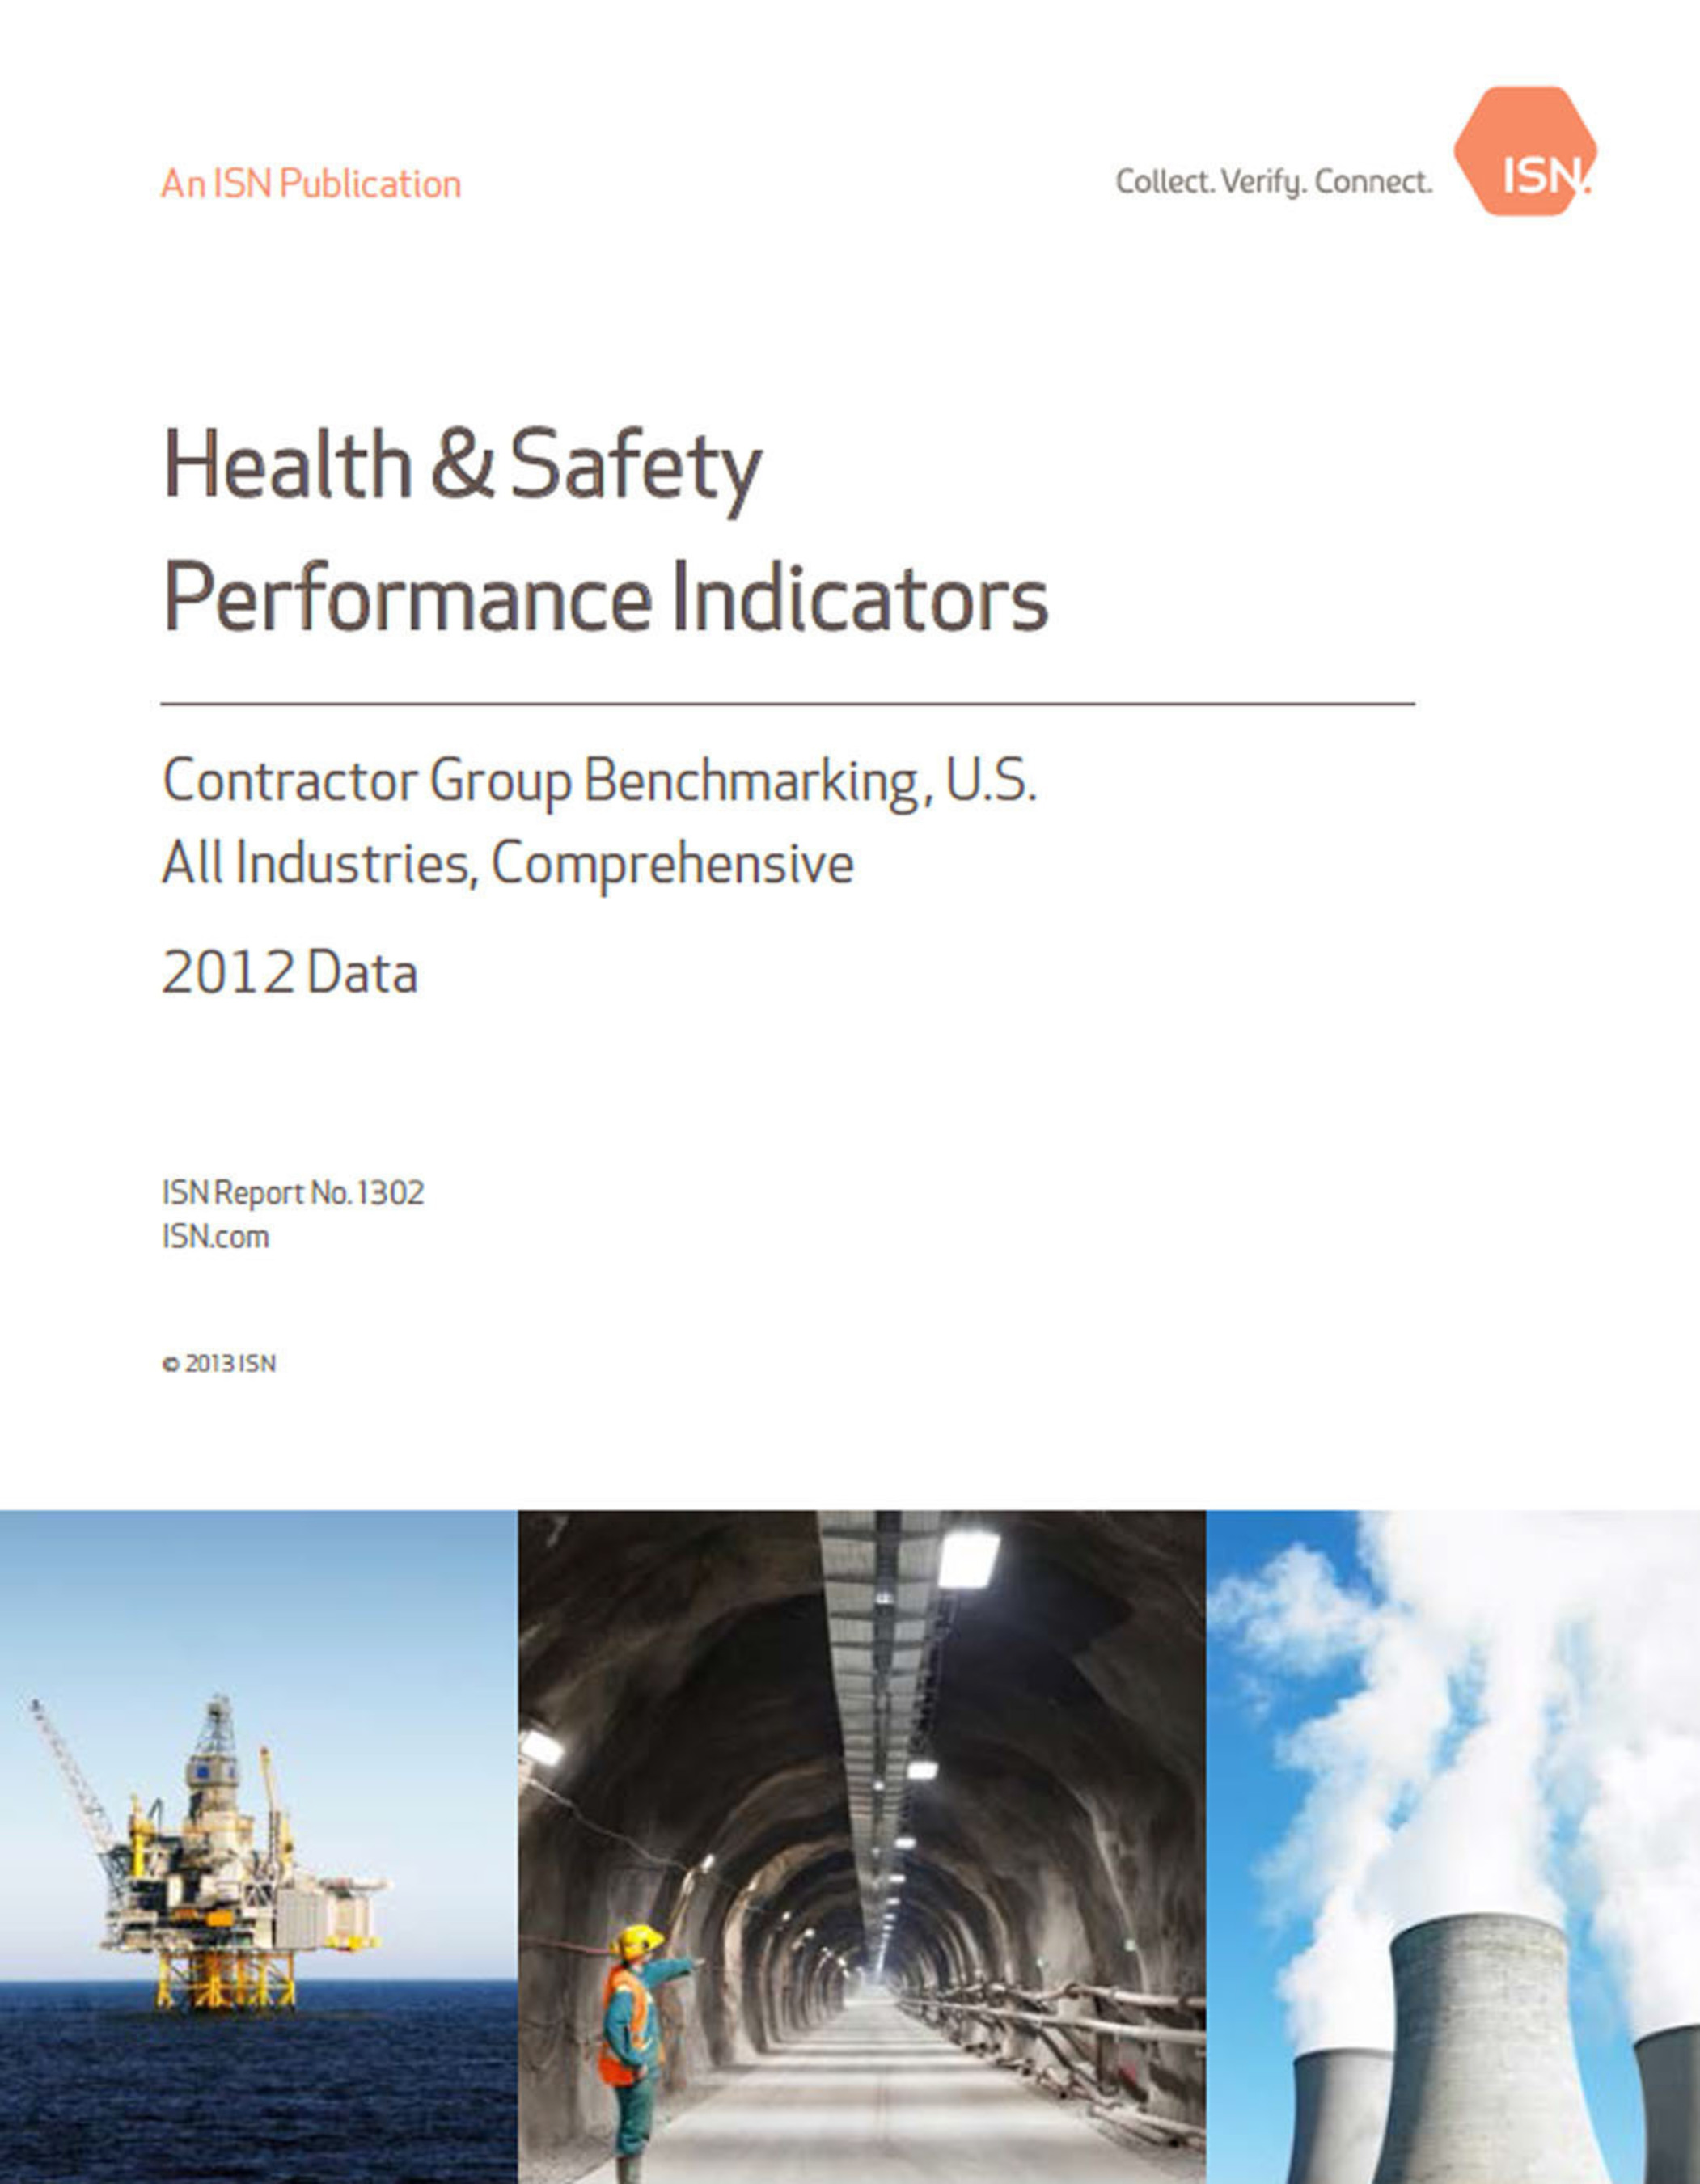 ISN's second installment of its three-part series of Health & Safety Performance Indicators publications for 2013 was released today. The Contractor Group Benchmarking Report compares aggregated and verified performance data from 25,000 U.S. companies collected from ISN's leading contractor management database, ISNetworld. The analysis and key performance indicators presented are summarized by both the North American Industry Classification System (NAICS) codes and by ISN Work Types for an additional level of granularity. To request ...